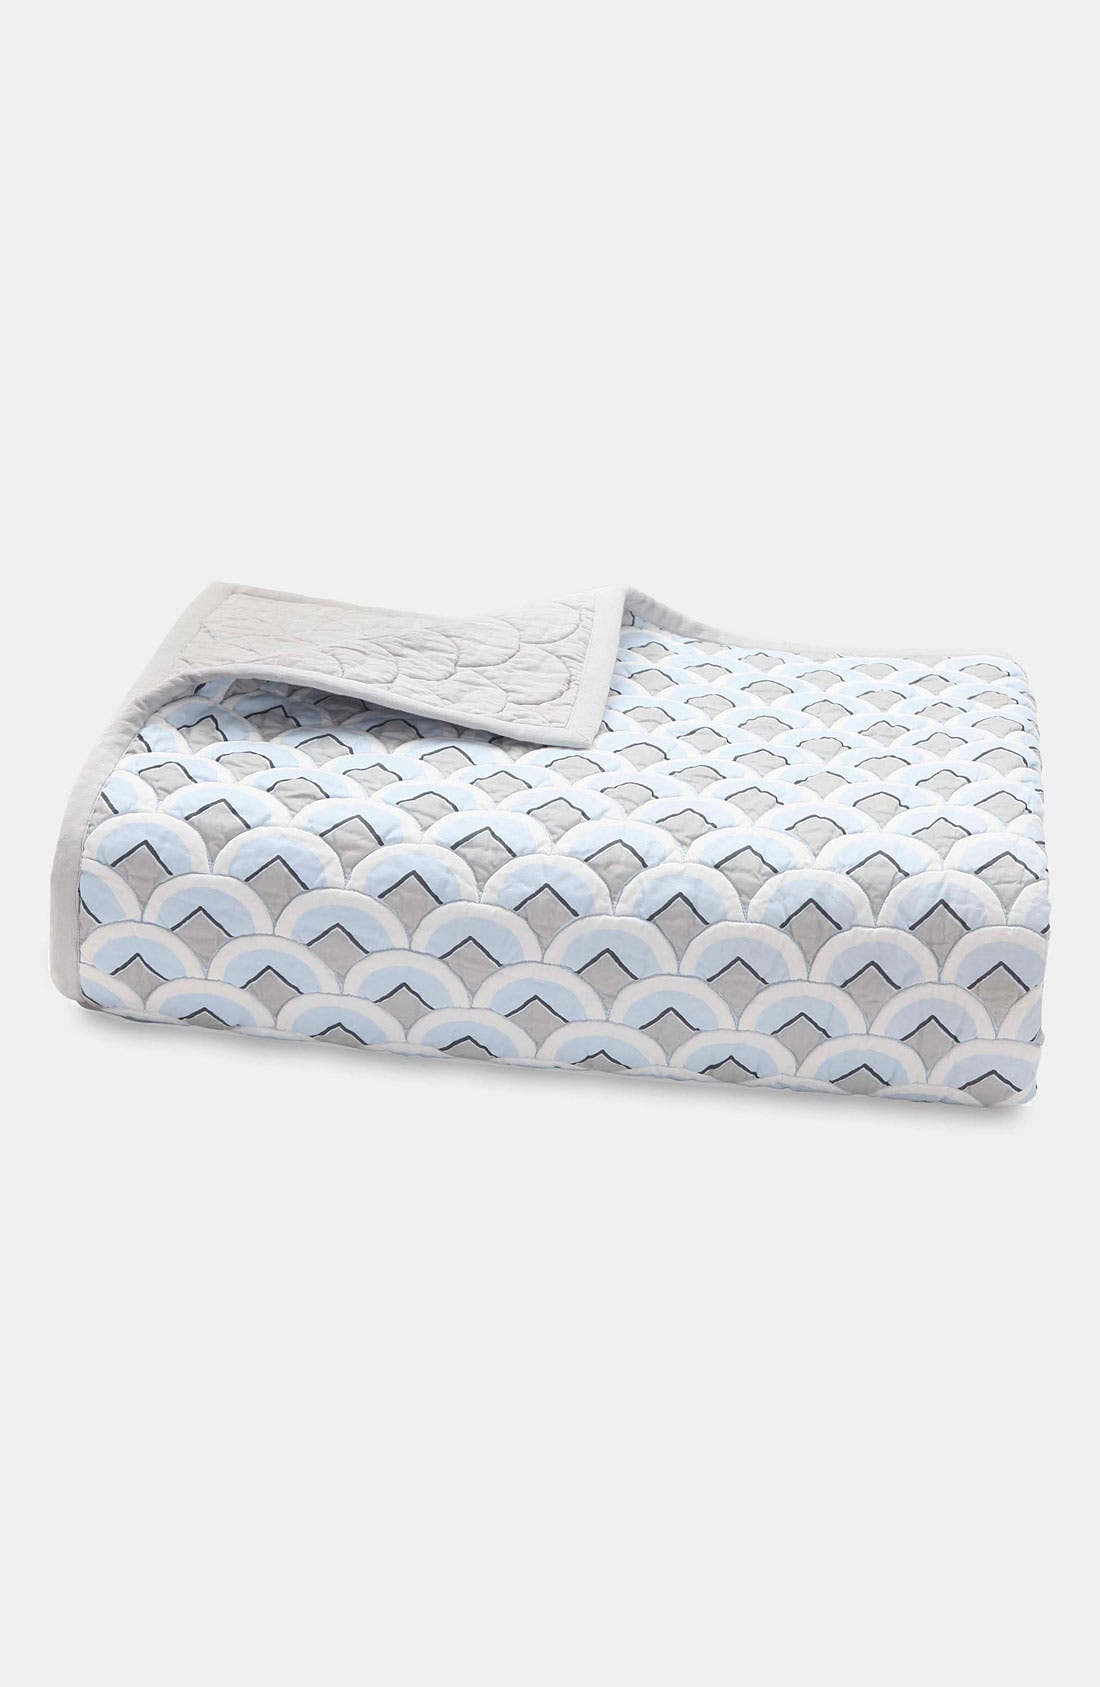 Main Image - kate spade new york 'deco geo' 400 thread count quilt